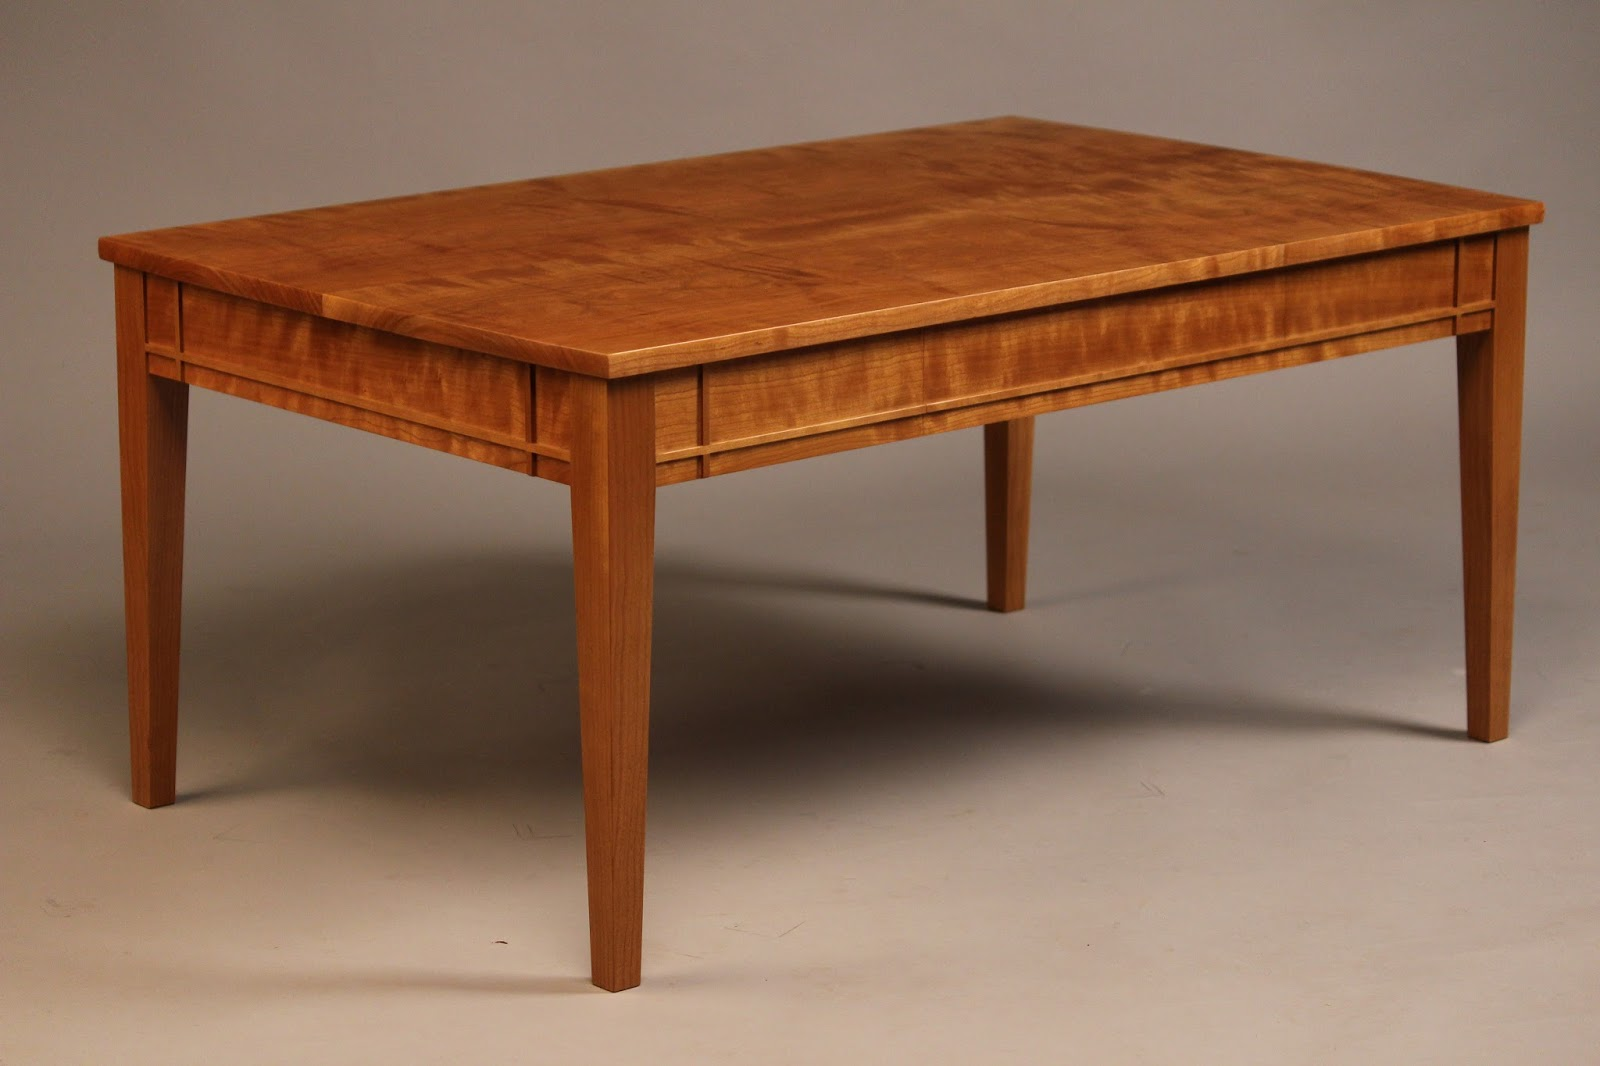 Doucette and wolfe fine furniture makers coffee table curly cherry table geotapseo Images